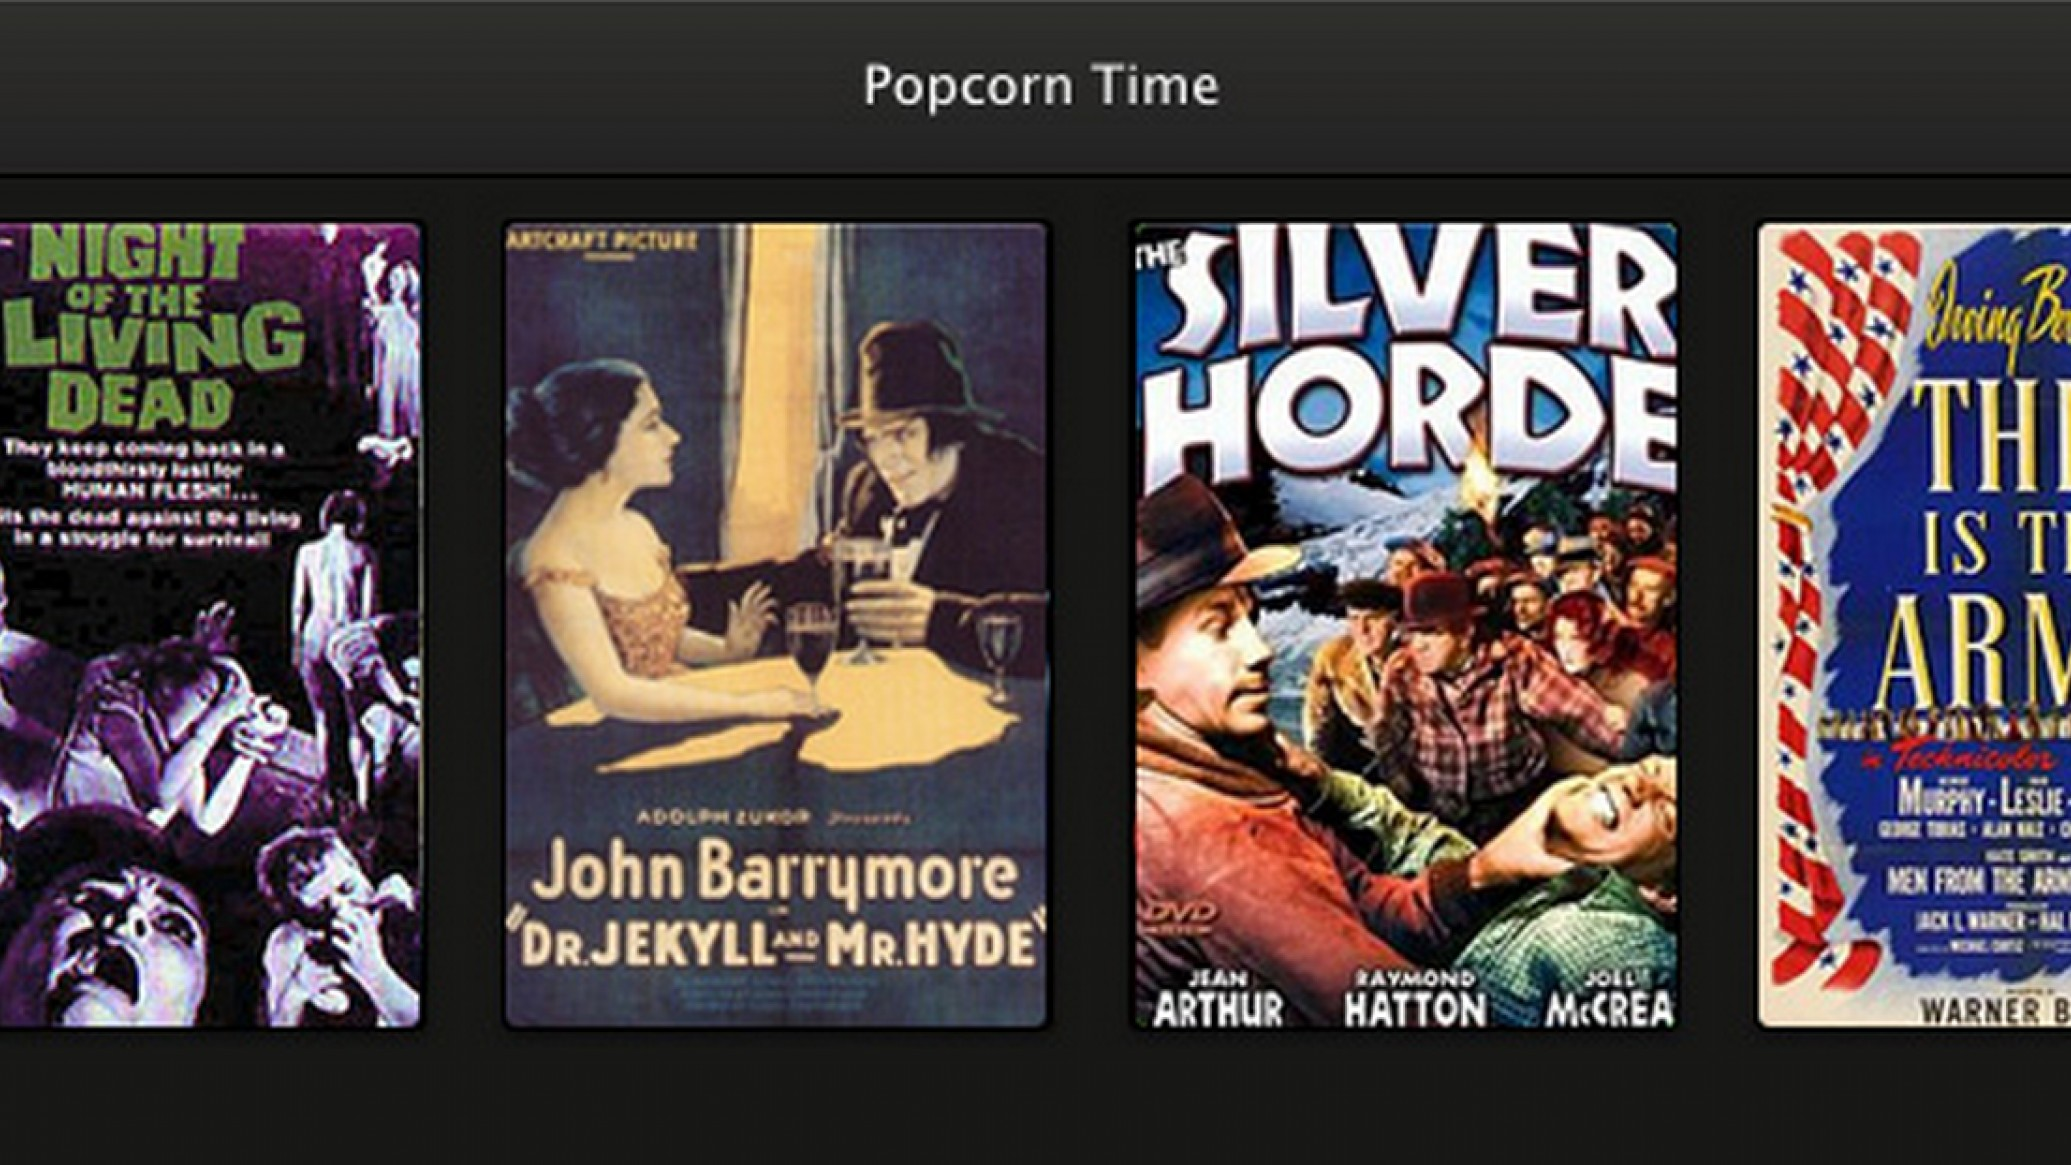 Popcorn Time Is Just Like Netflix, Except Everything Is Pirated